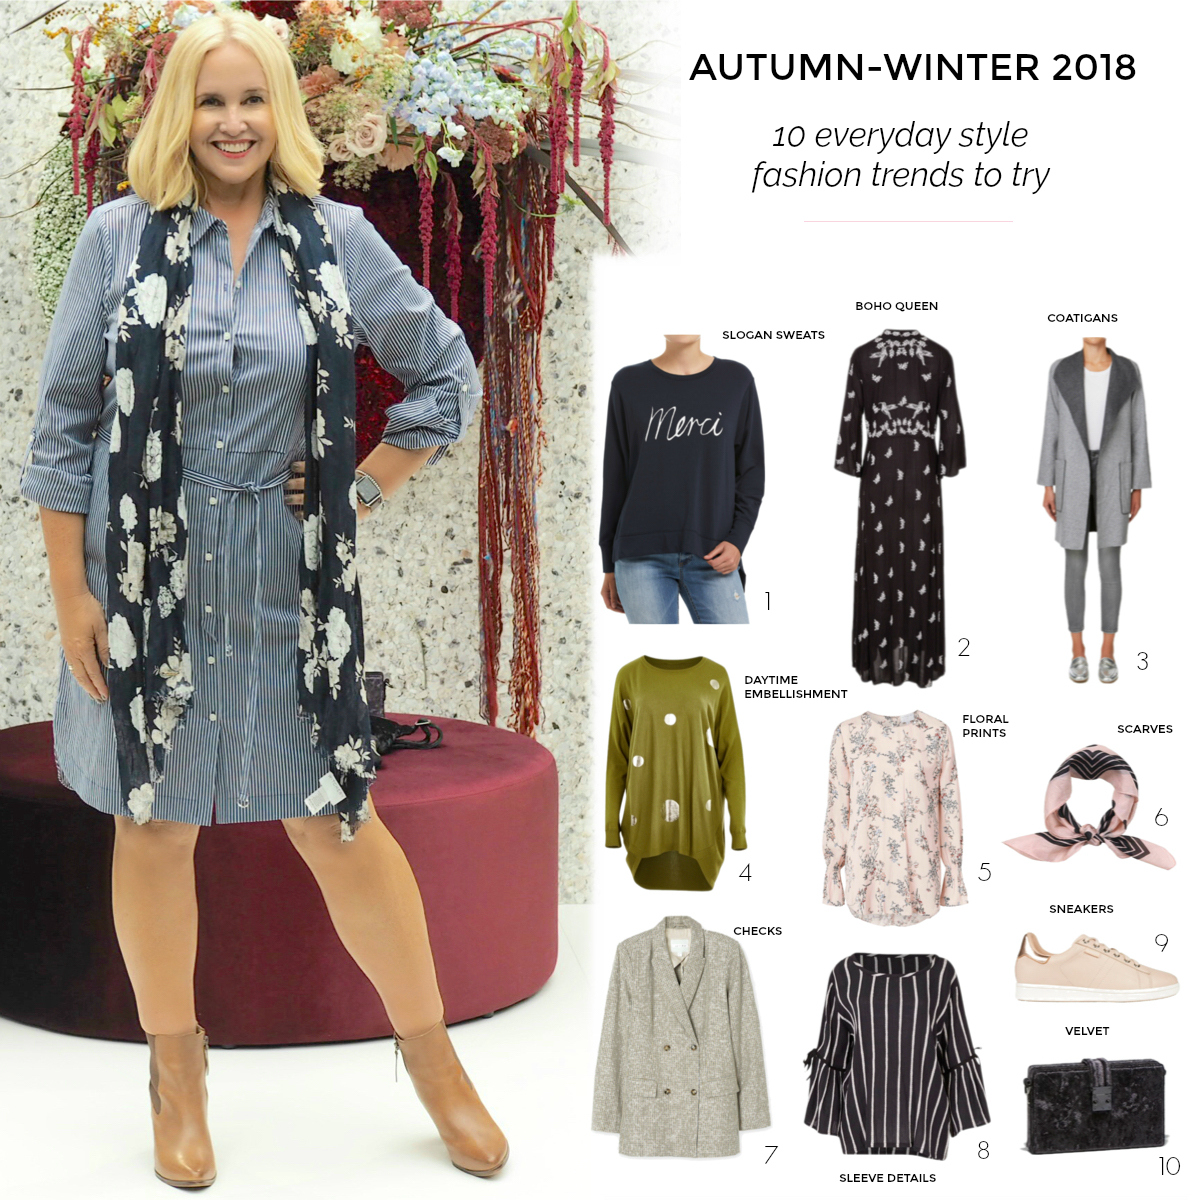 10 everyday style fashion trends to try for autumnwinter